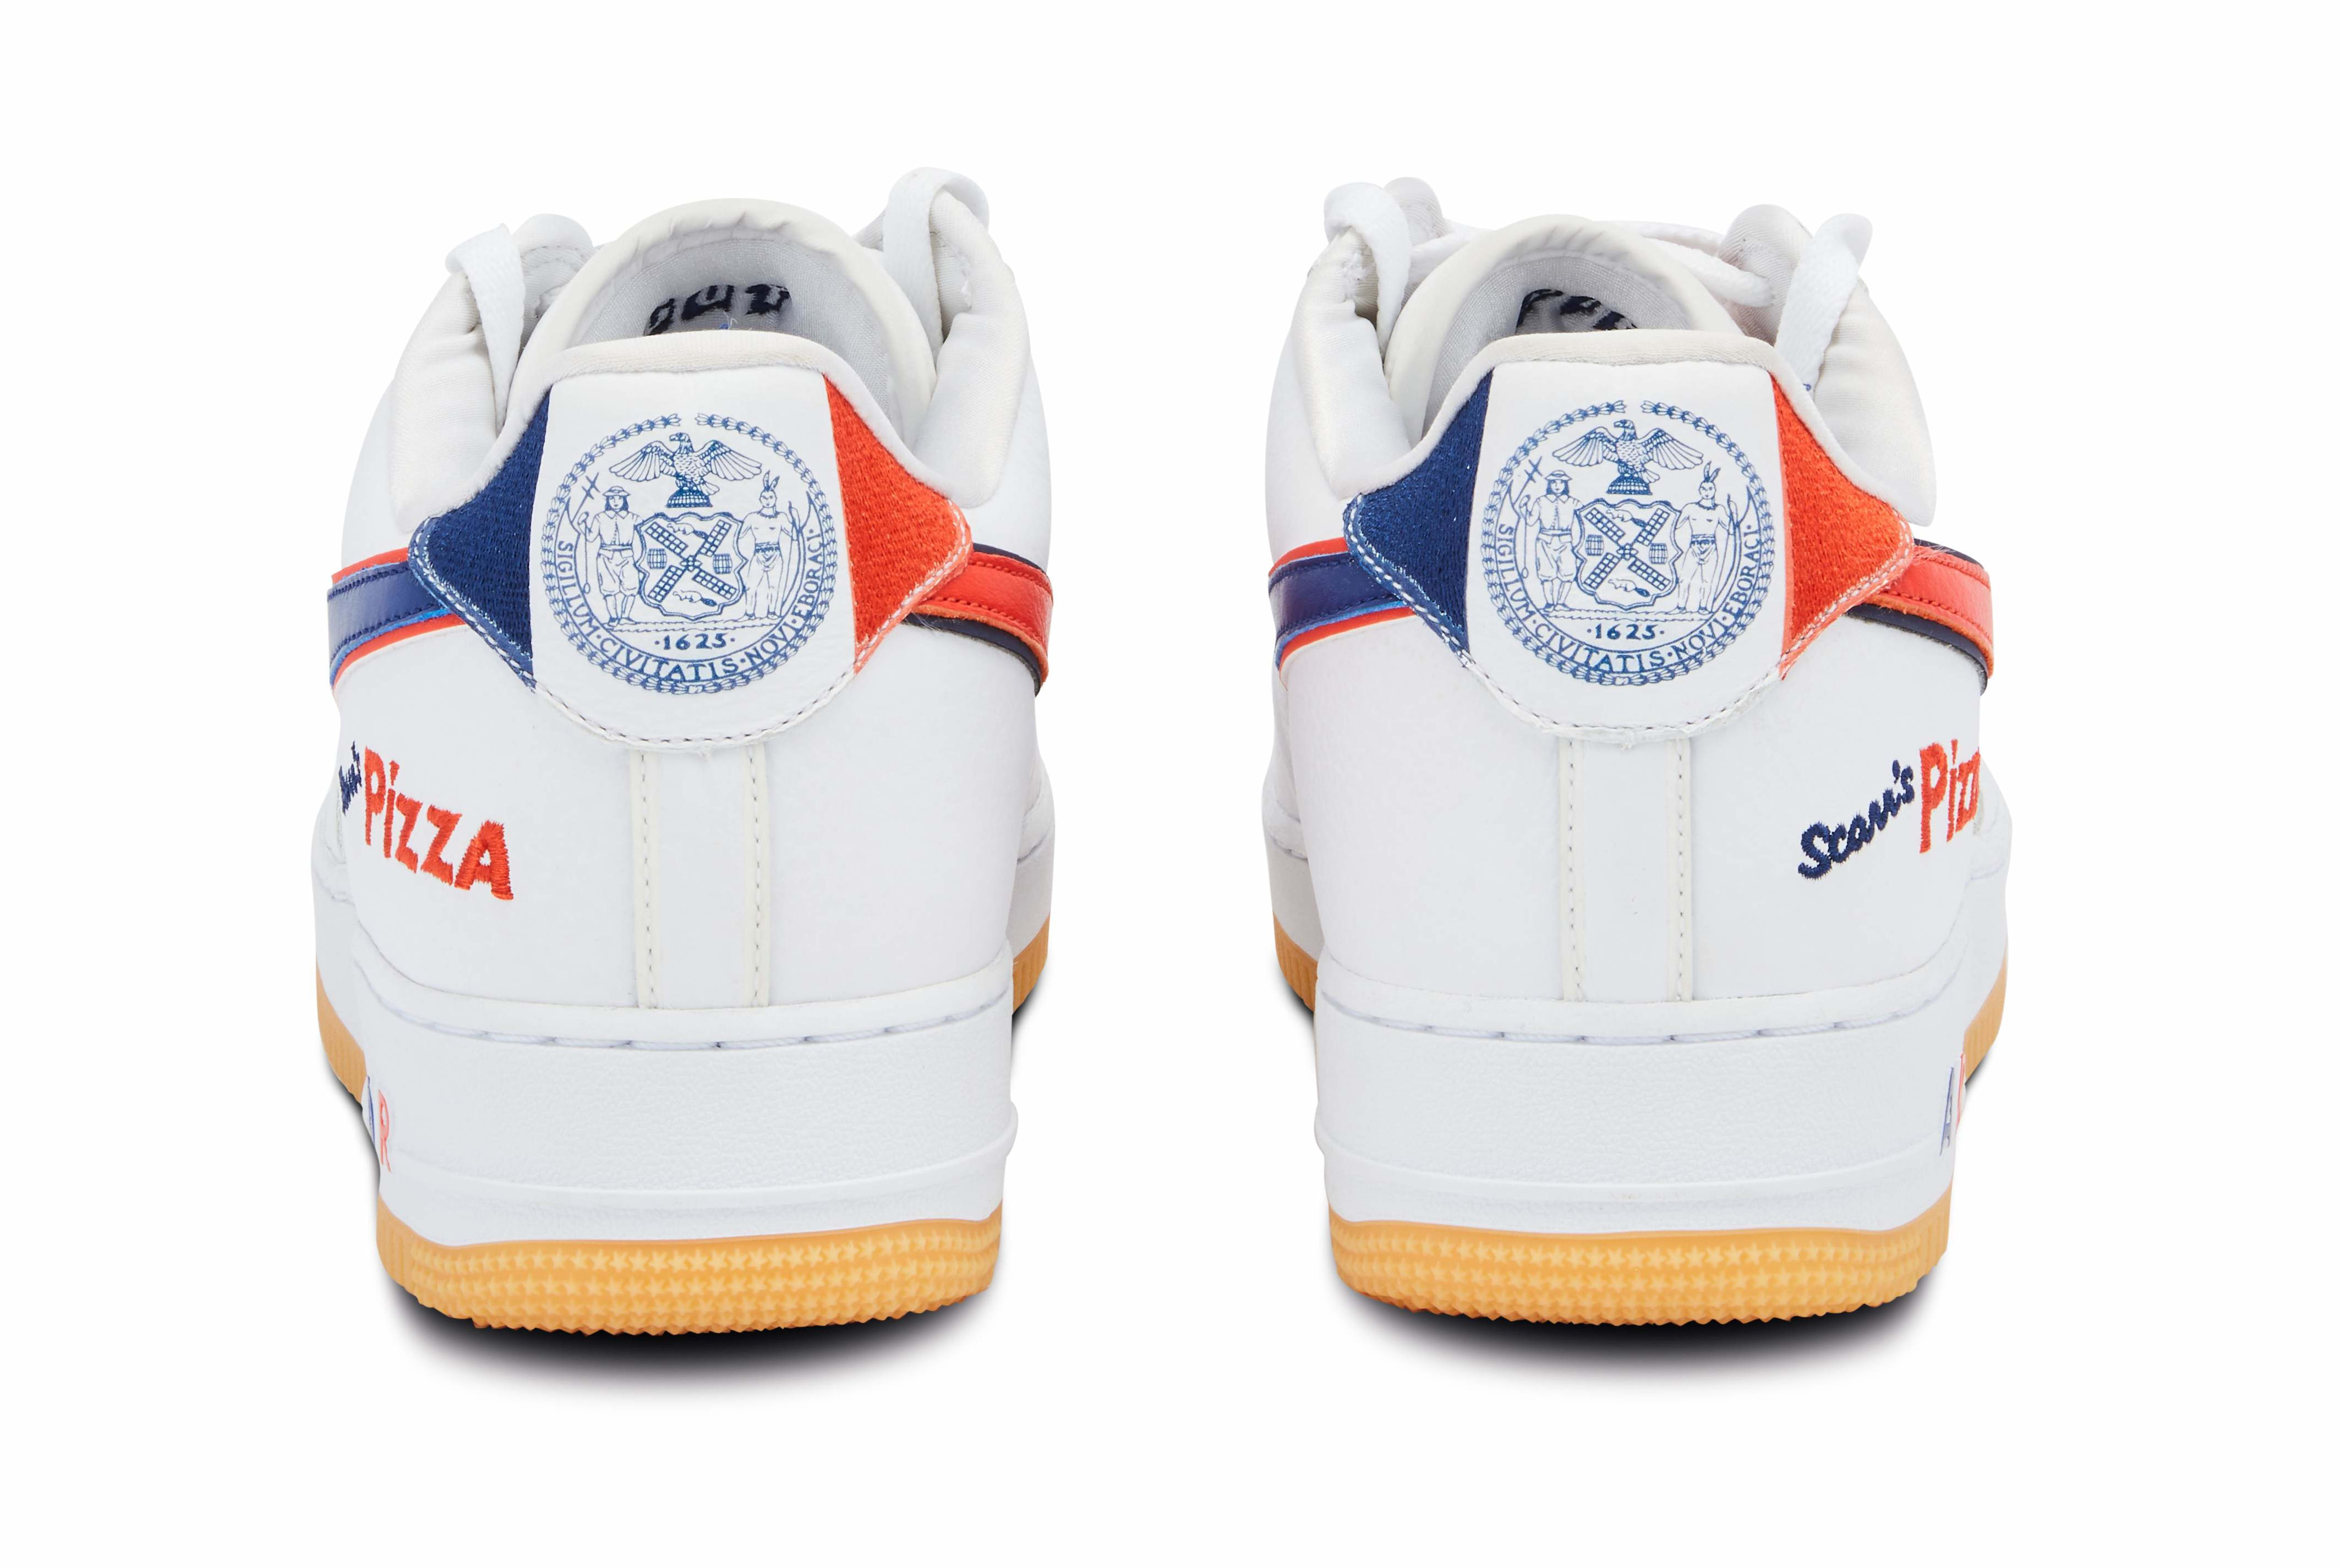 Scarr's Pizza x Nike Air Force 1 Low Heel